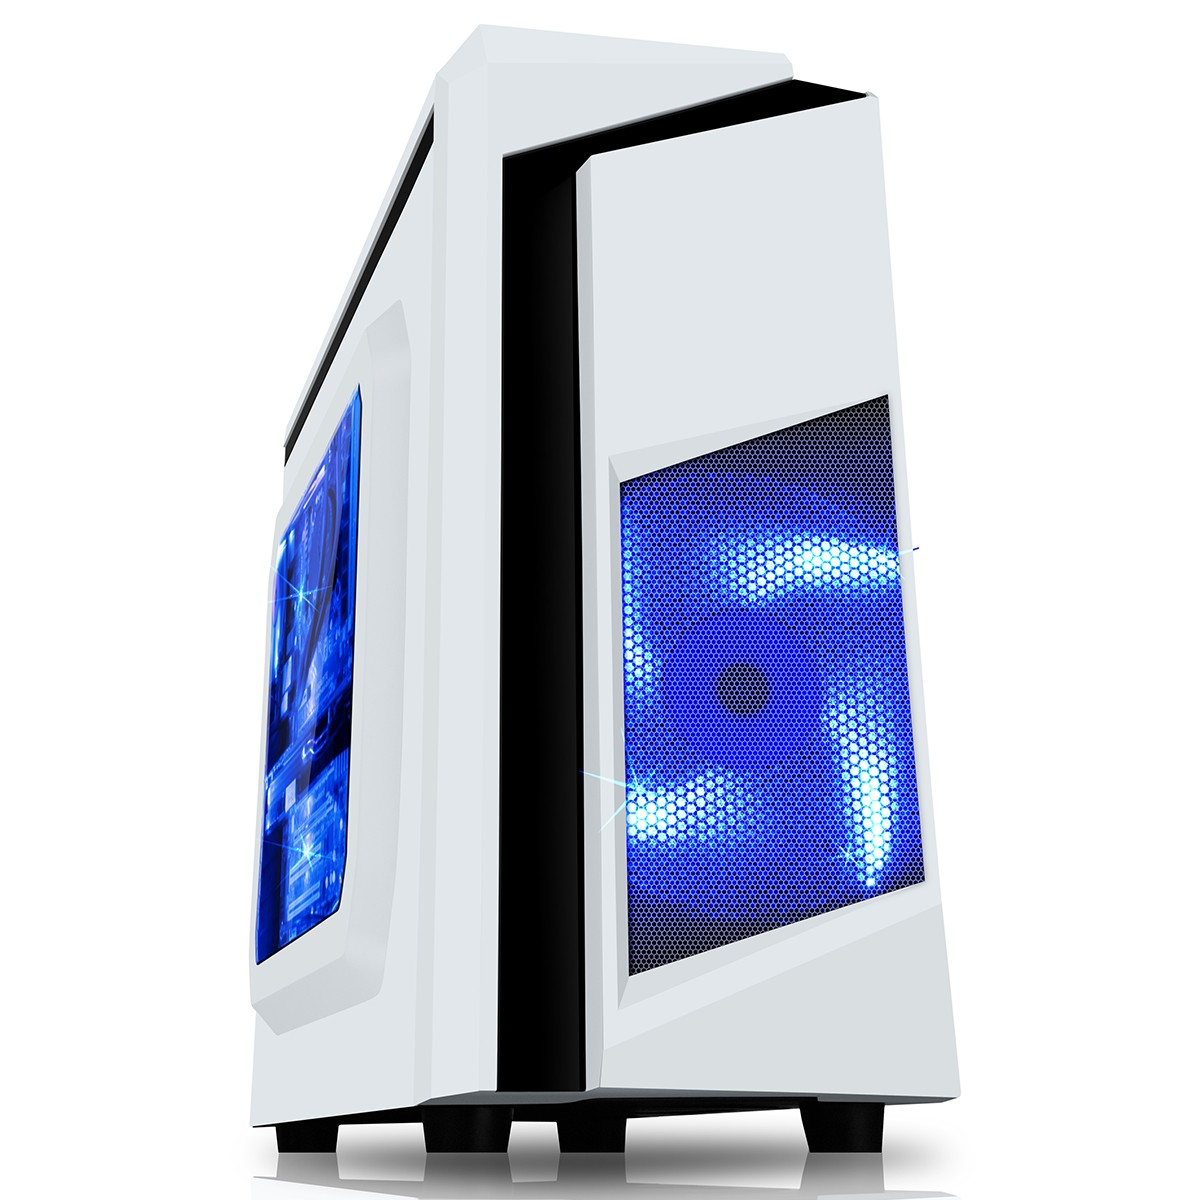 Cheap Core i5 Gaming PC Computer WiFi 1TB 8GB + 4GB 1050ti Graphics & Windows 10